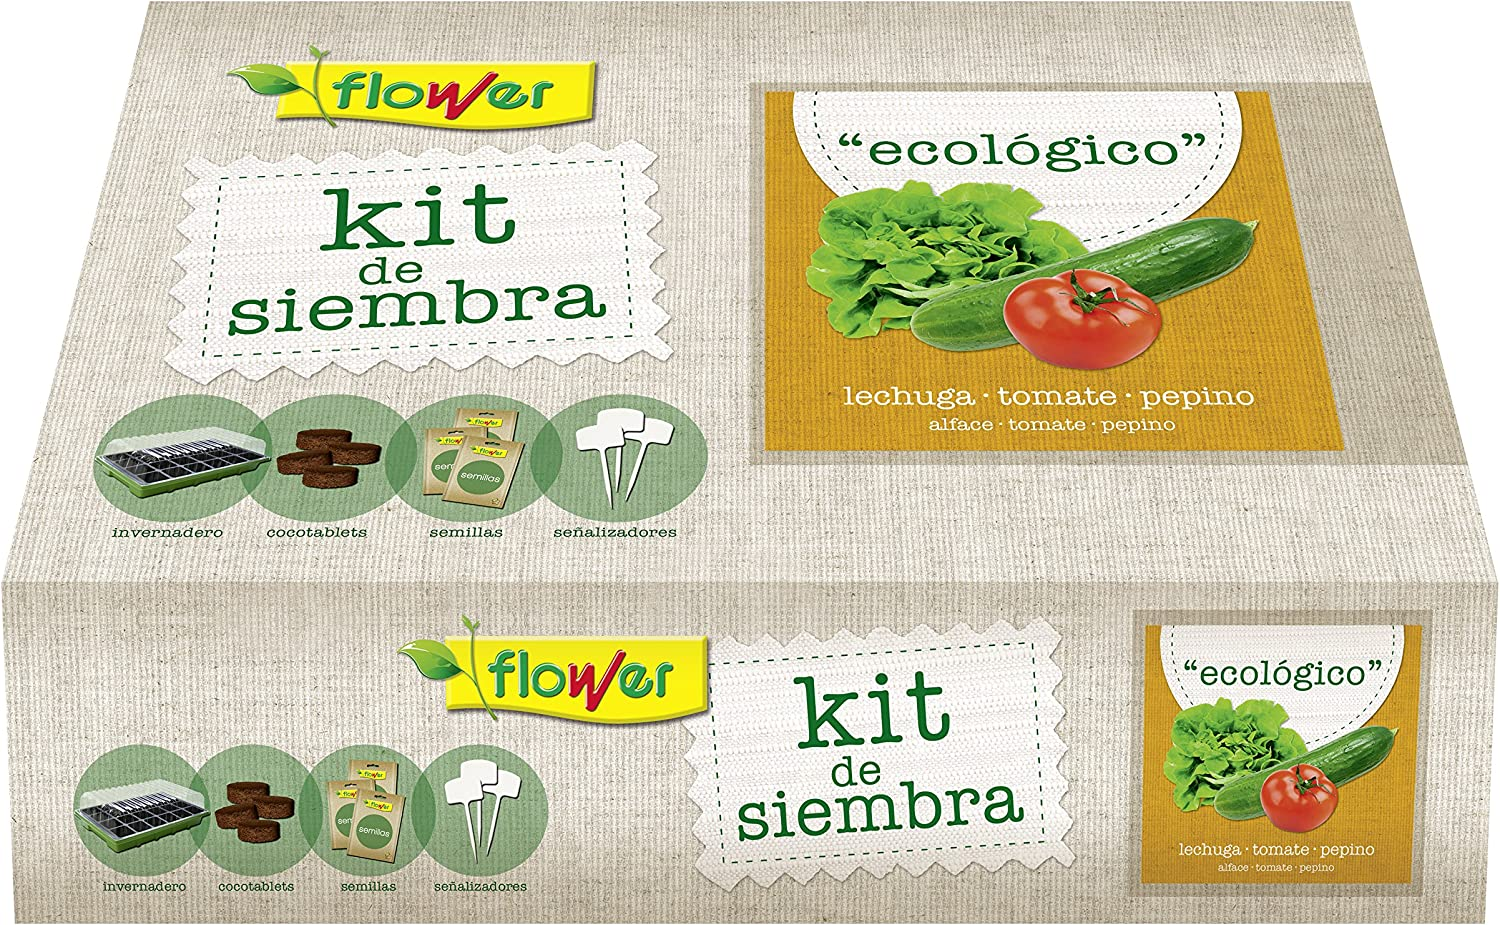 Flower 51178 51178-Kit Semillas ecologico, No Aplica, 38x24.5x9.5 ...